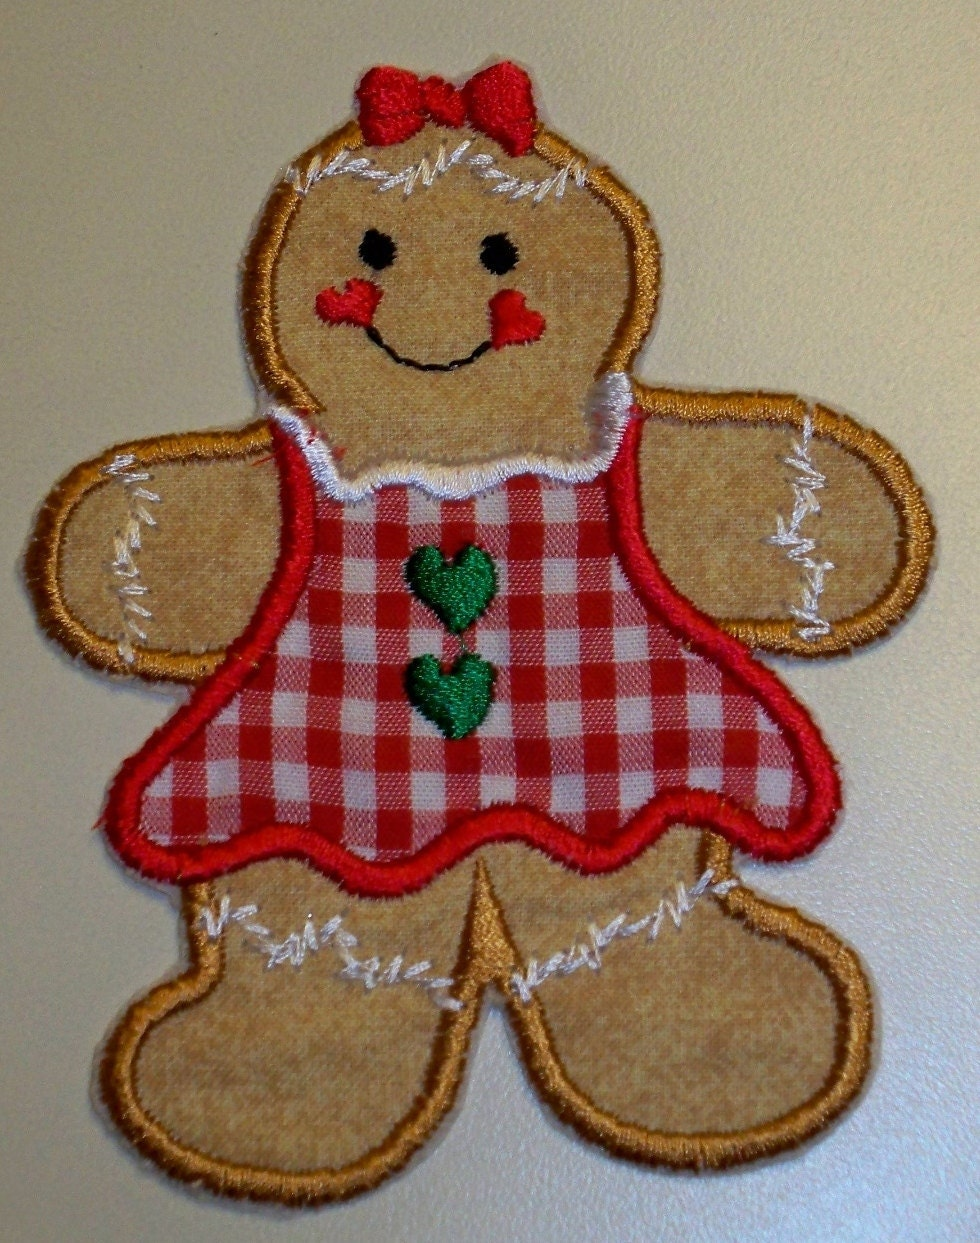 Gingerbread girl Christmas iron on applique patch red gingham dress